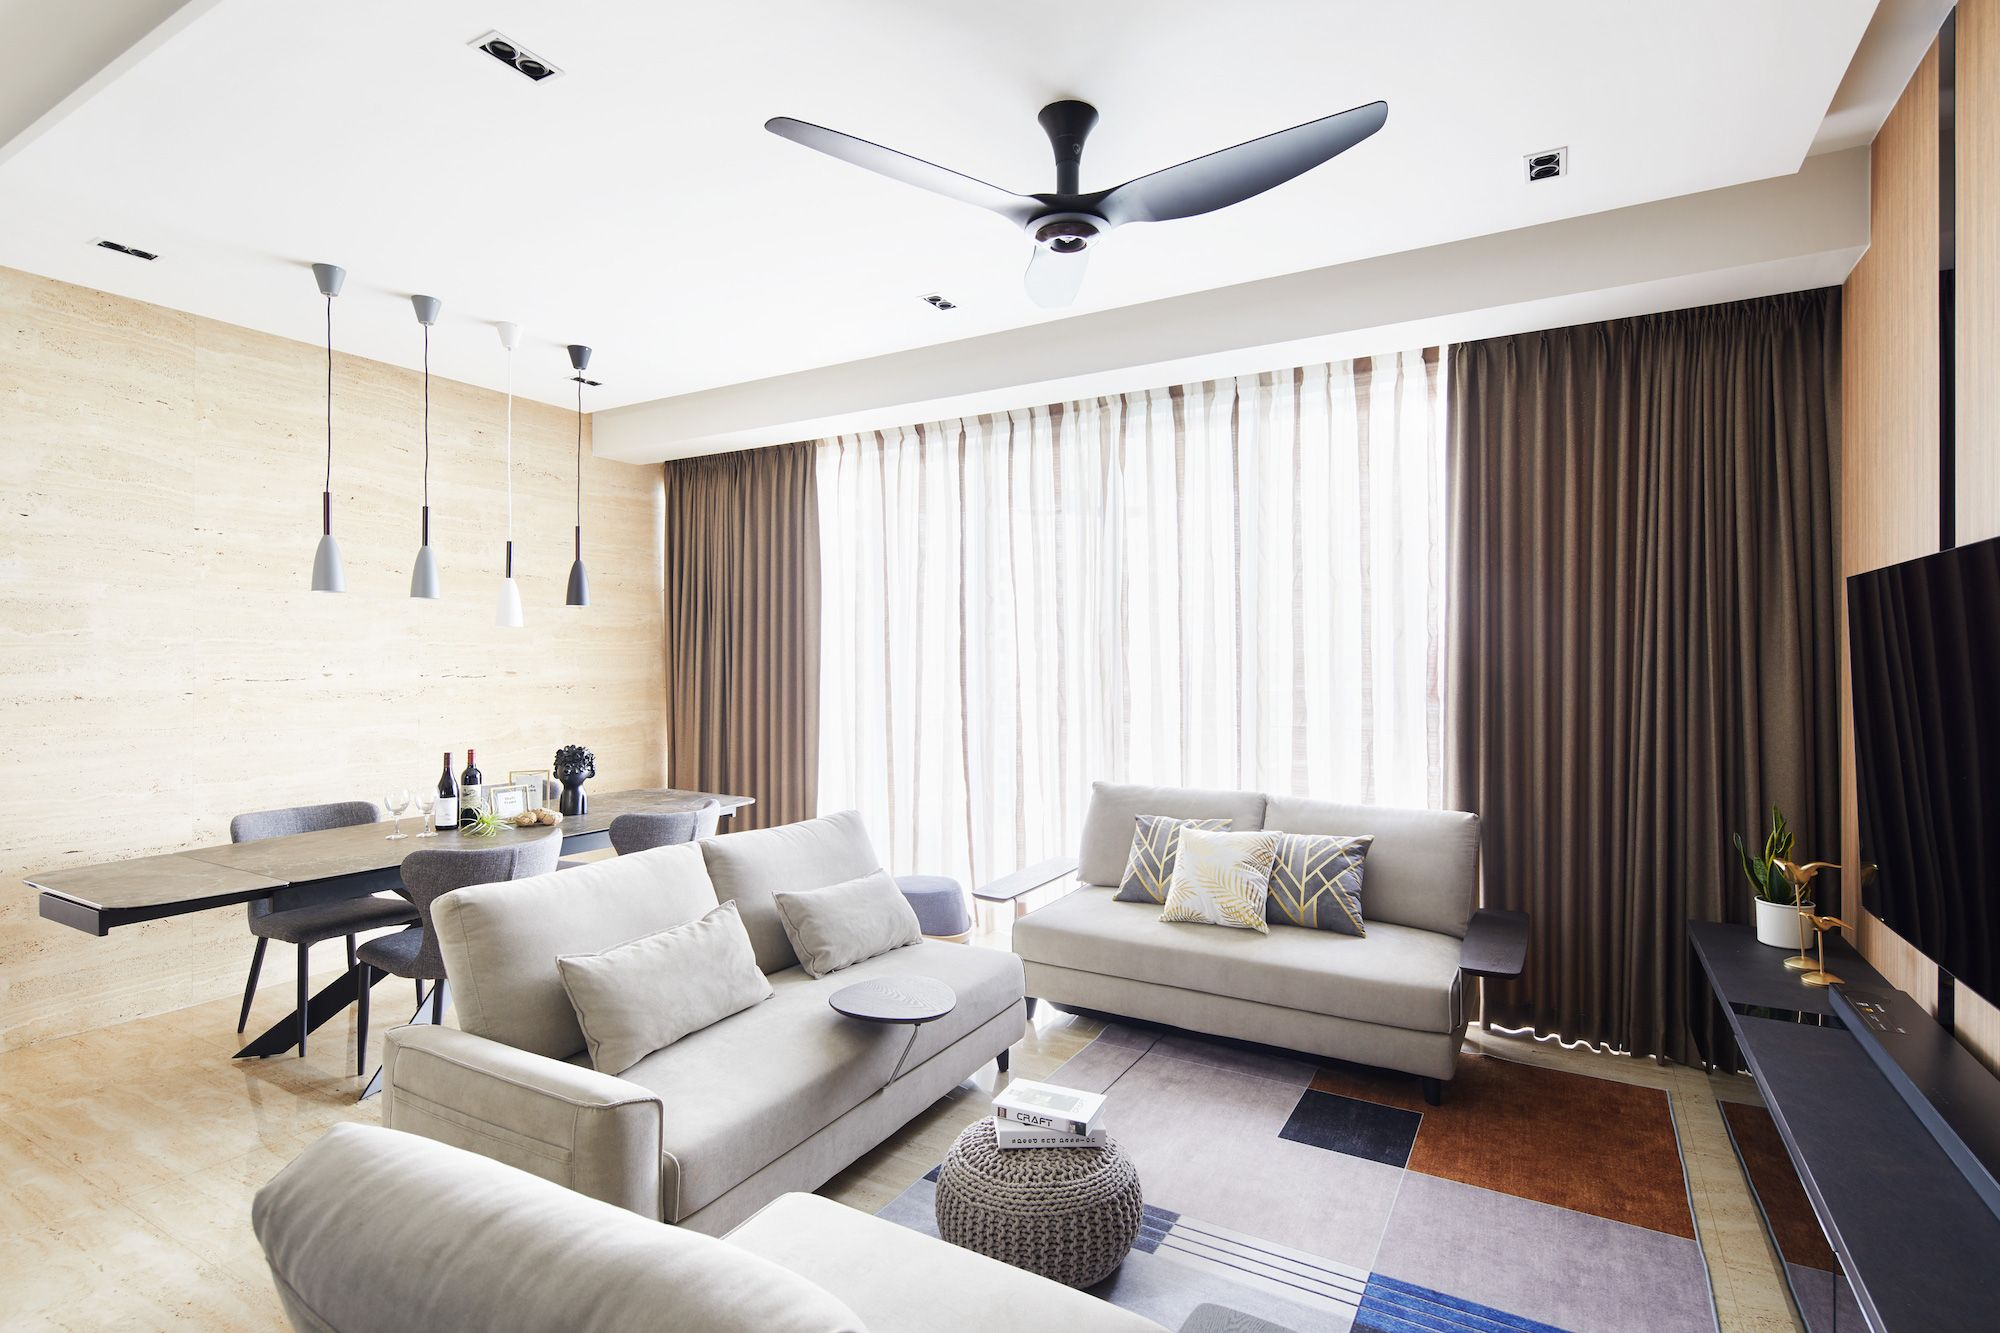 Inspiring and Modern Condominium Interior Design at the Cyan